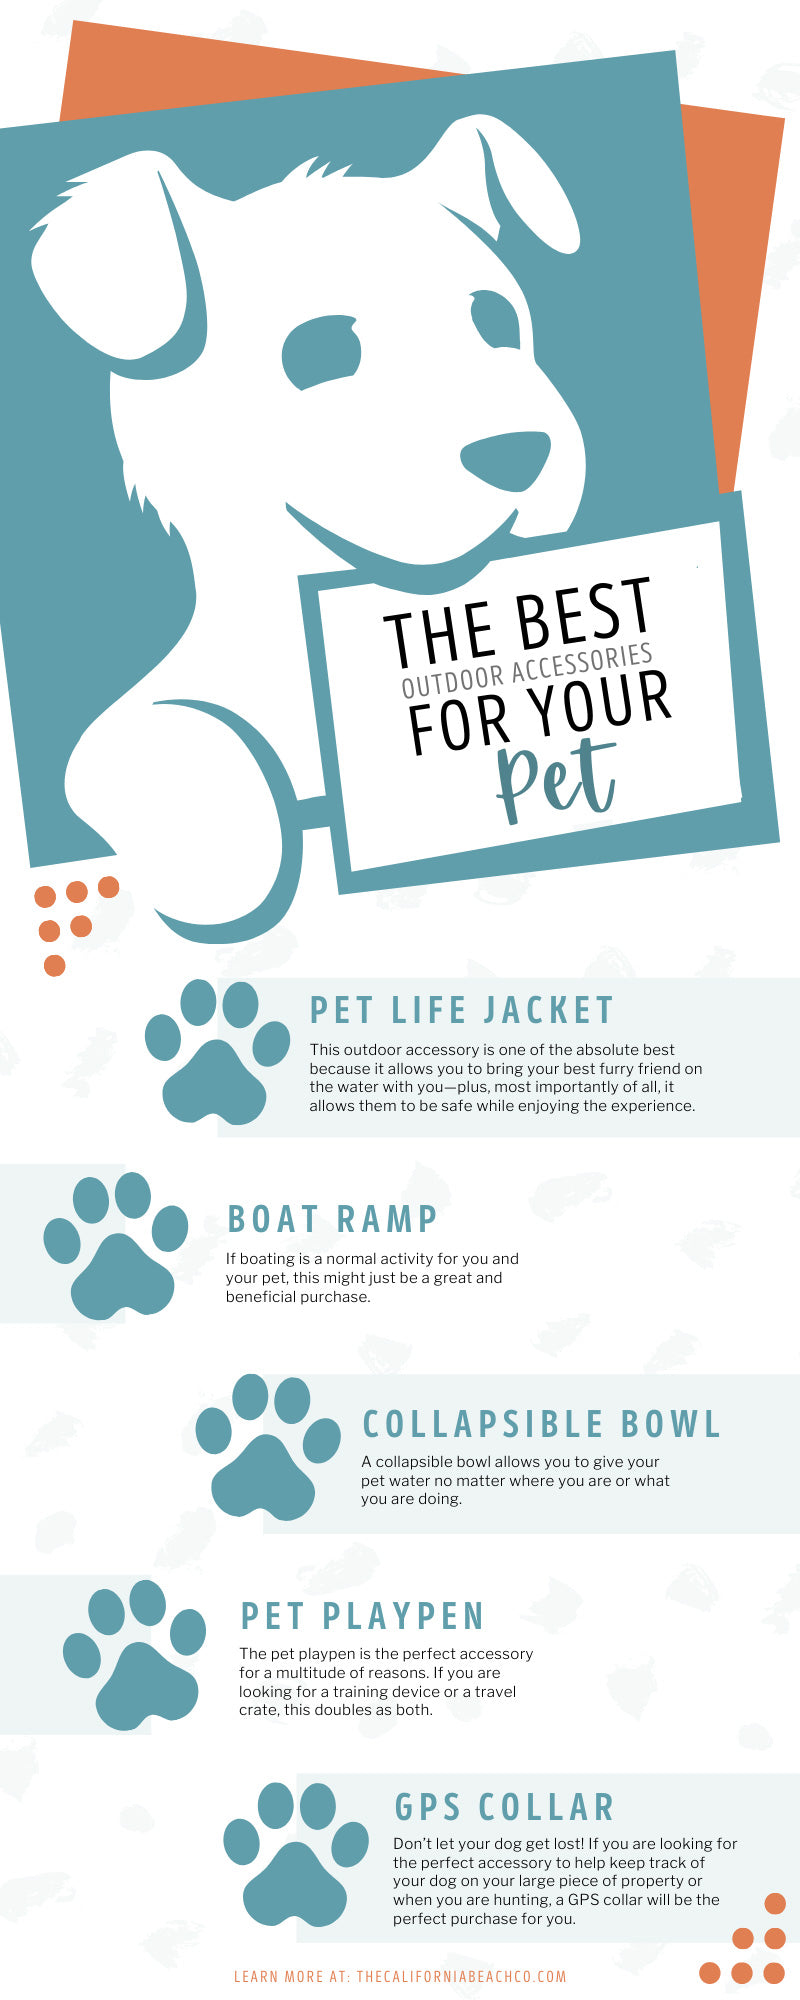 The Best Outdoor Accessories for Your Pet